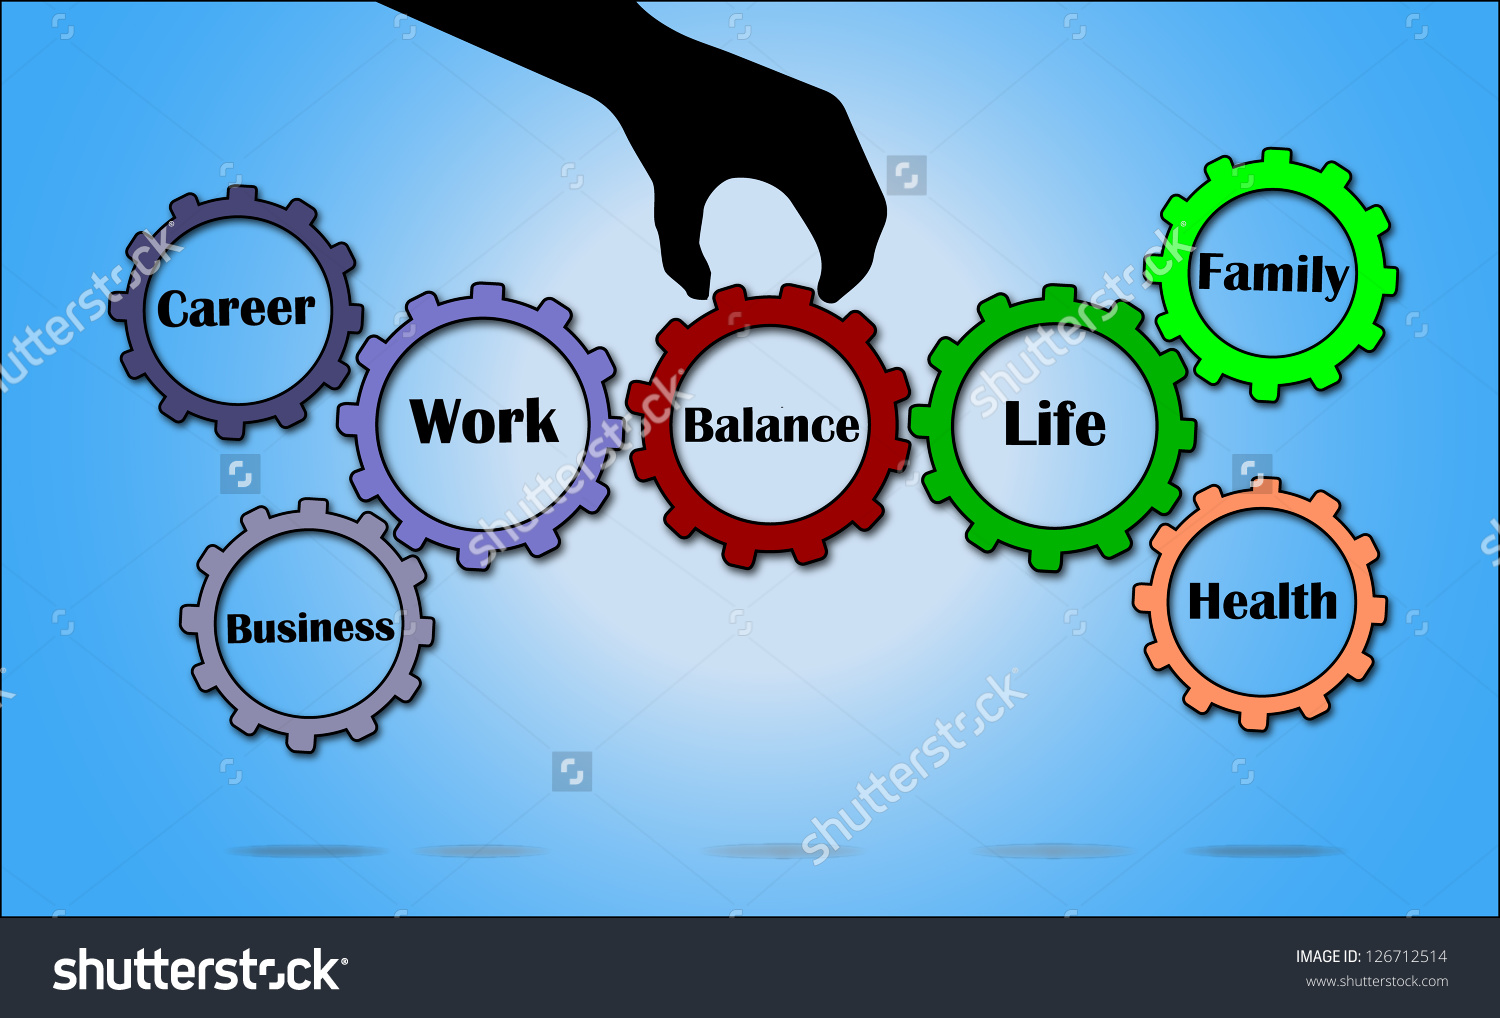 Work Life Balance Illustration Using Gears Stock Illustration.